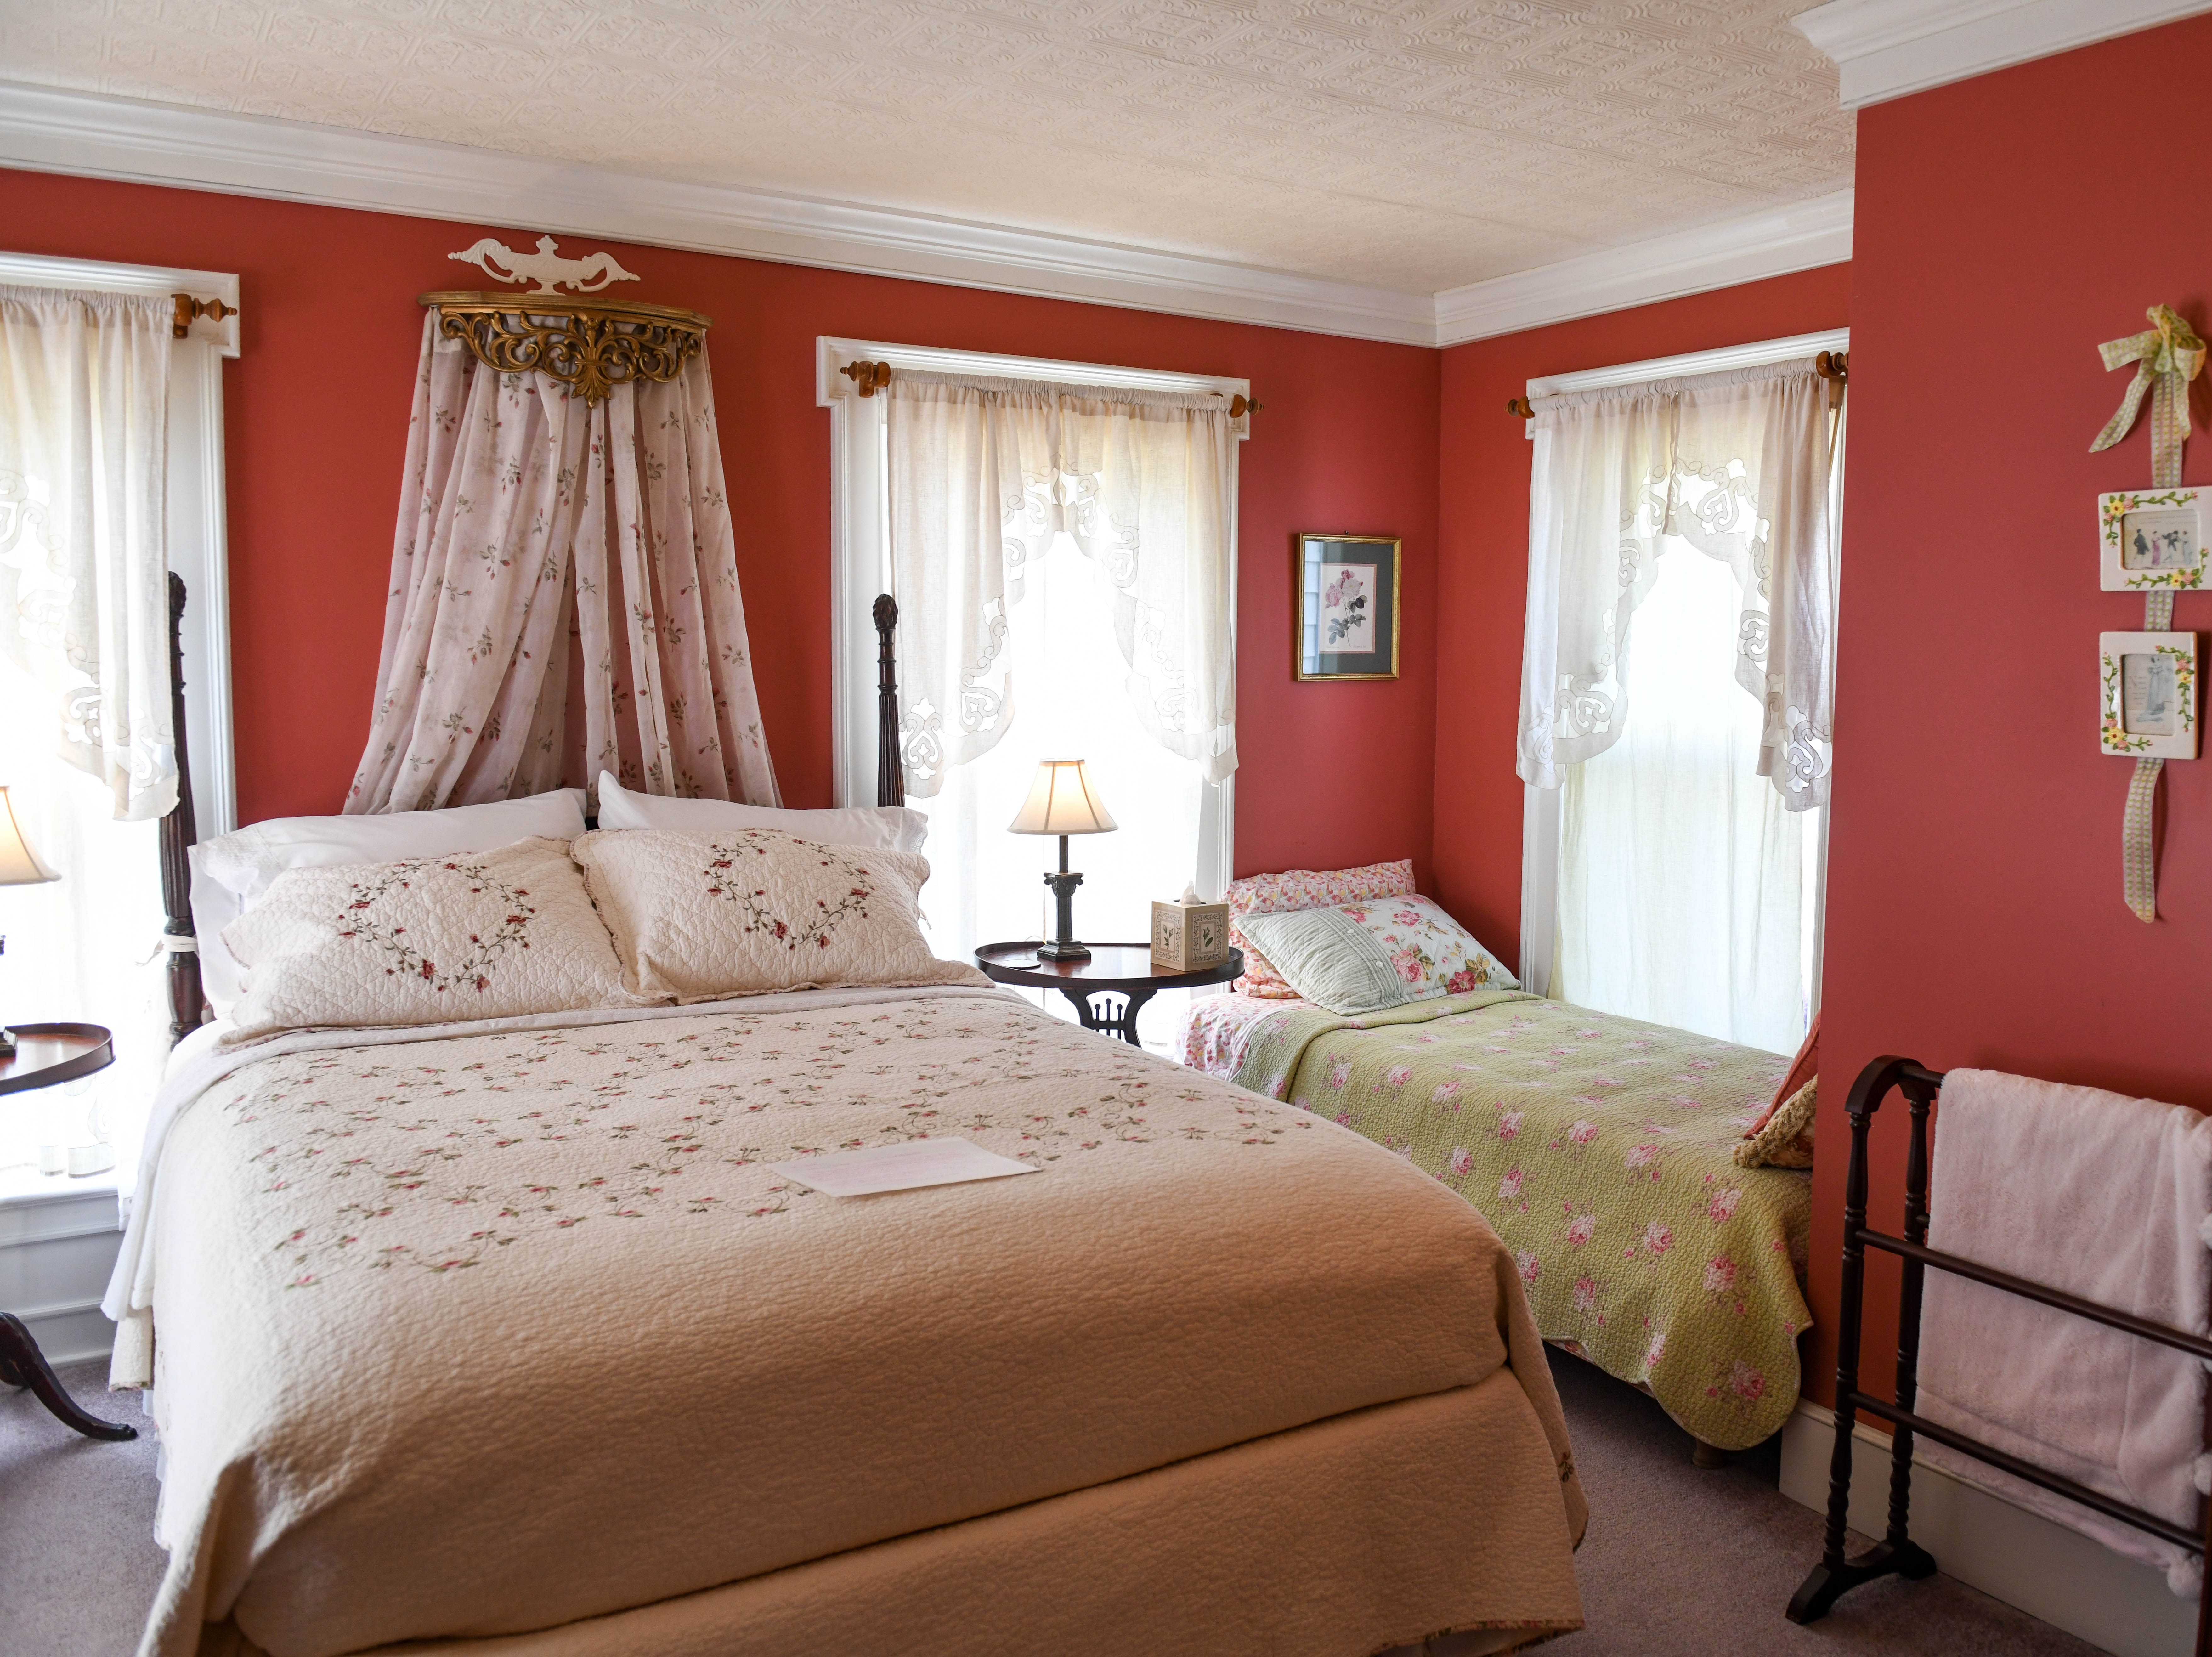 Rooms at Princess Anne Book Lovers Inn are each themed after a different author on Wednesday, Feb. 27, 2019.